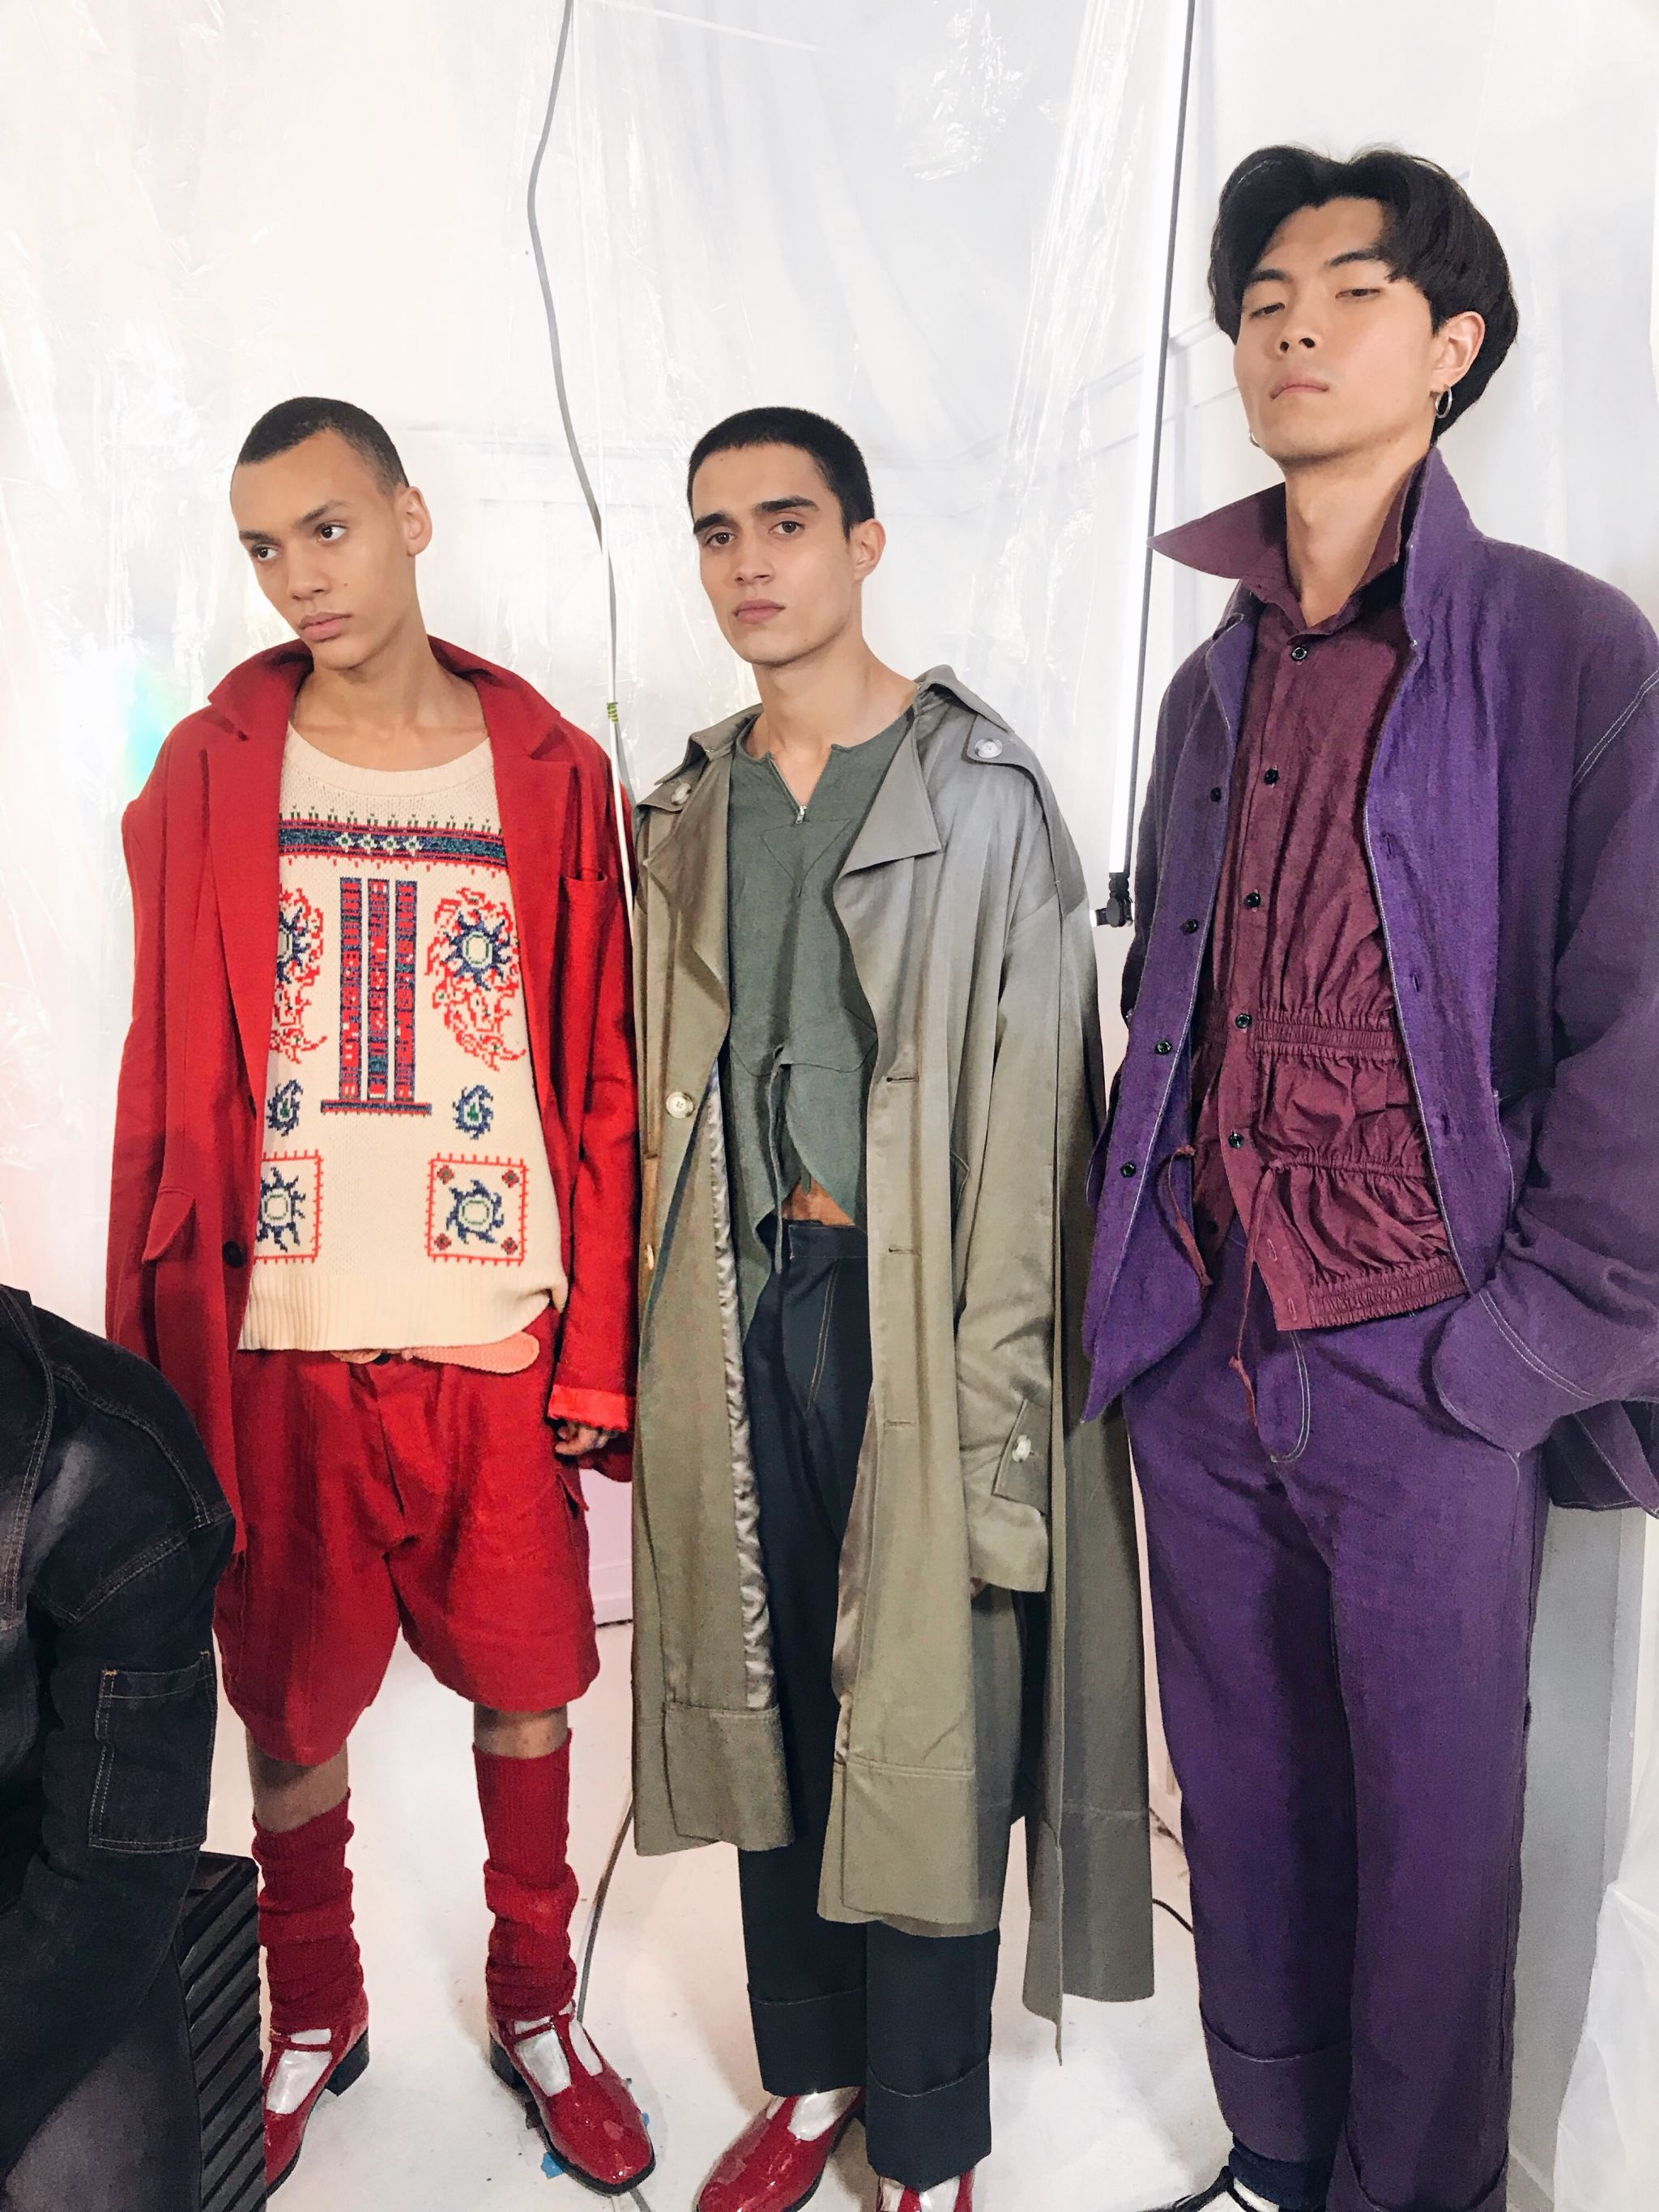 London fashion week men's Aw 18